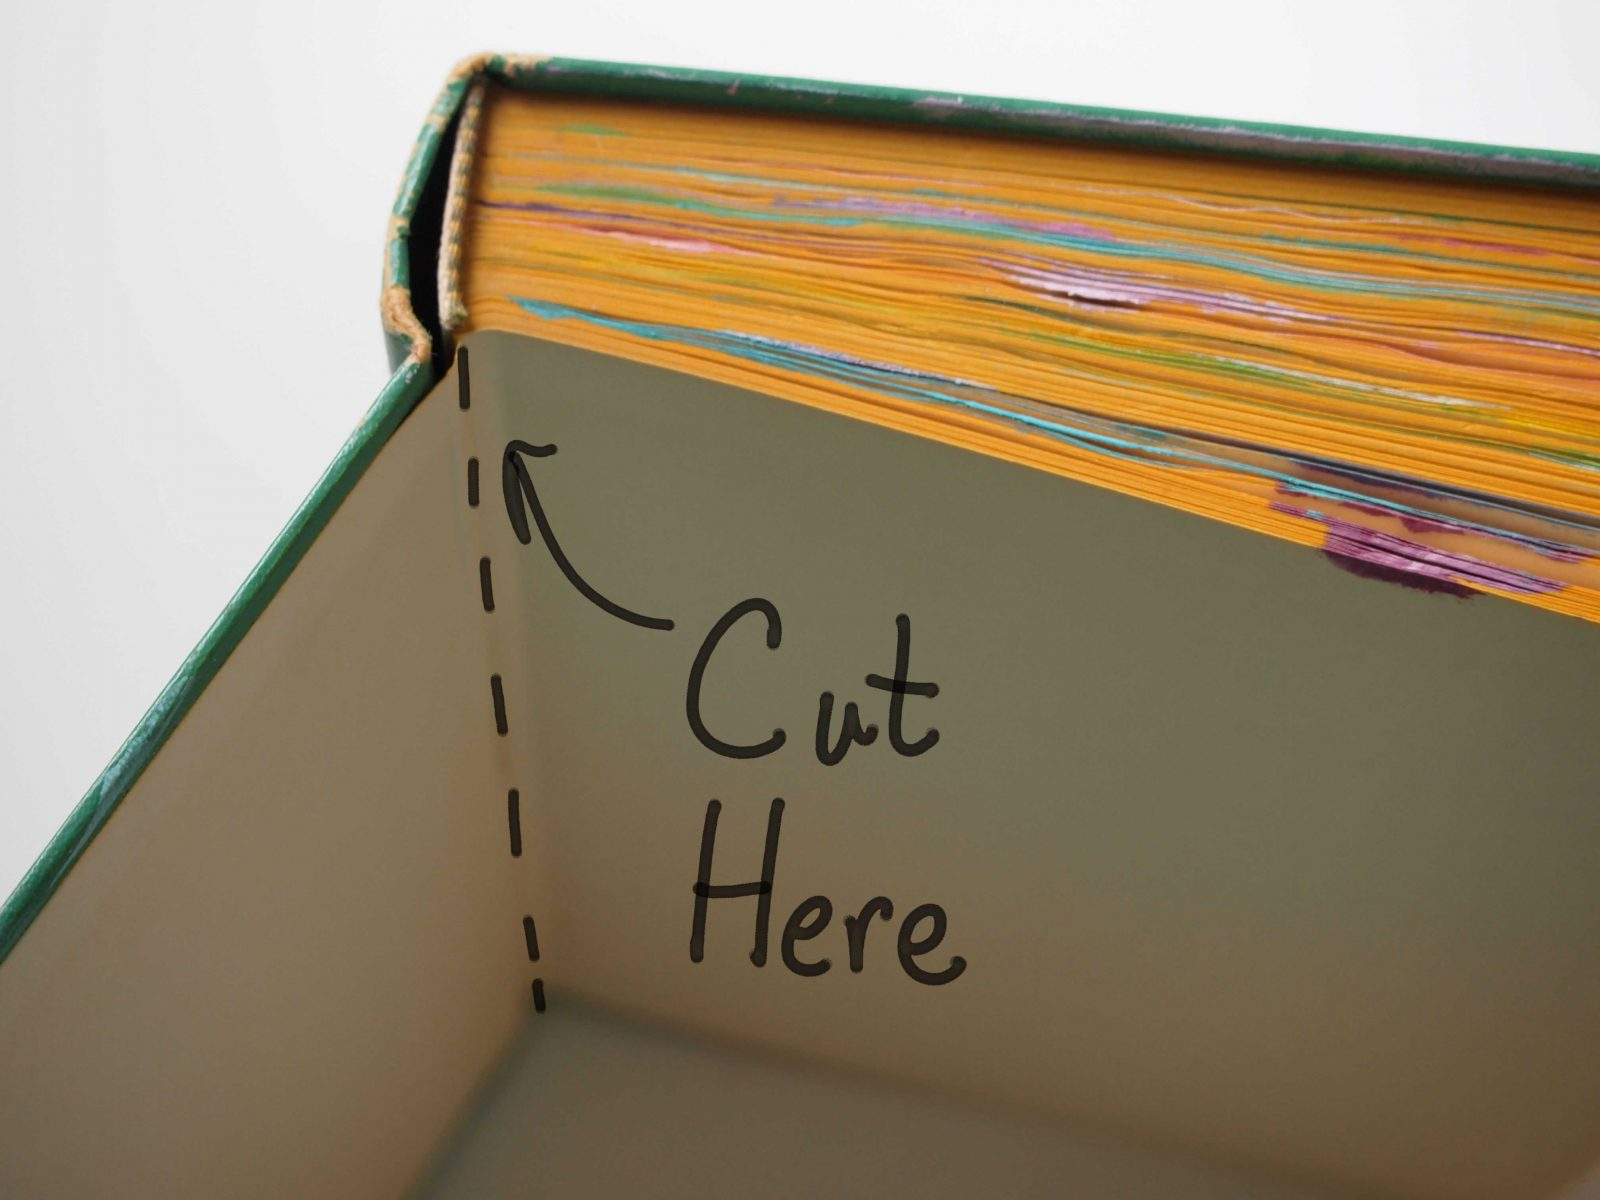 How to turn a book into a journal carolyn dube for How to make an old book